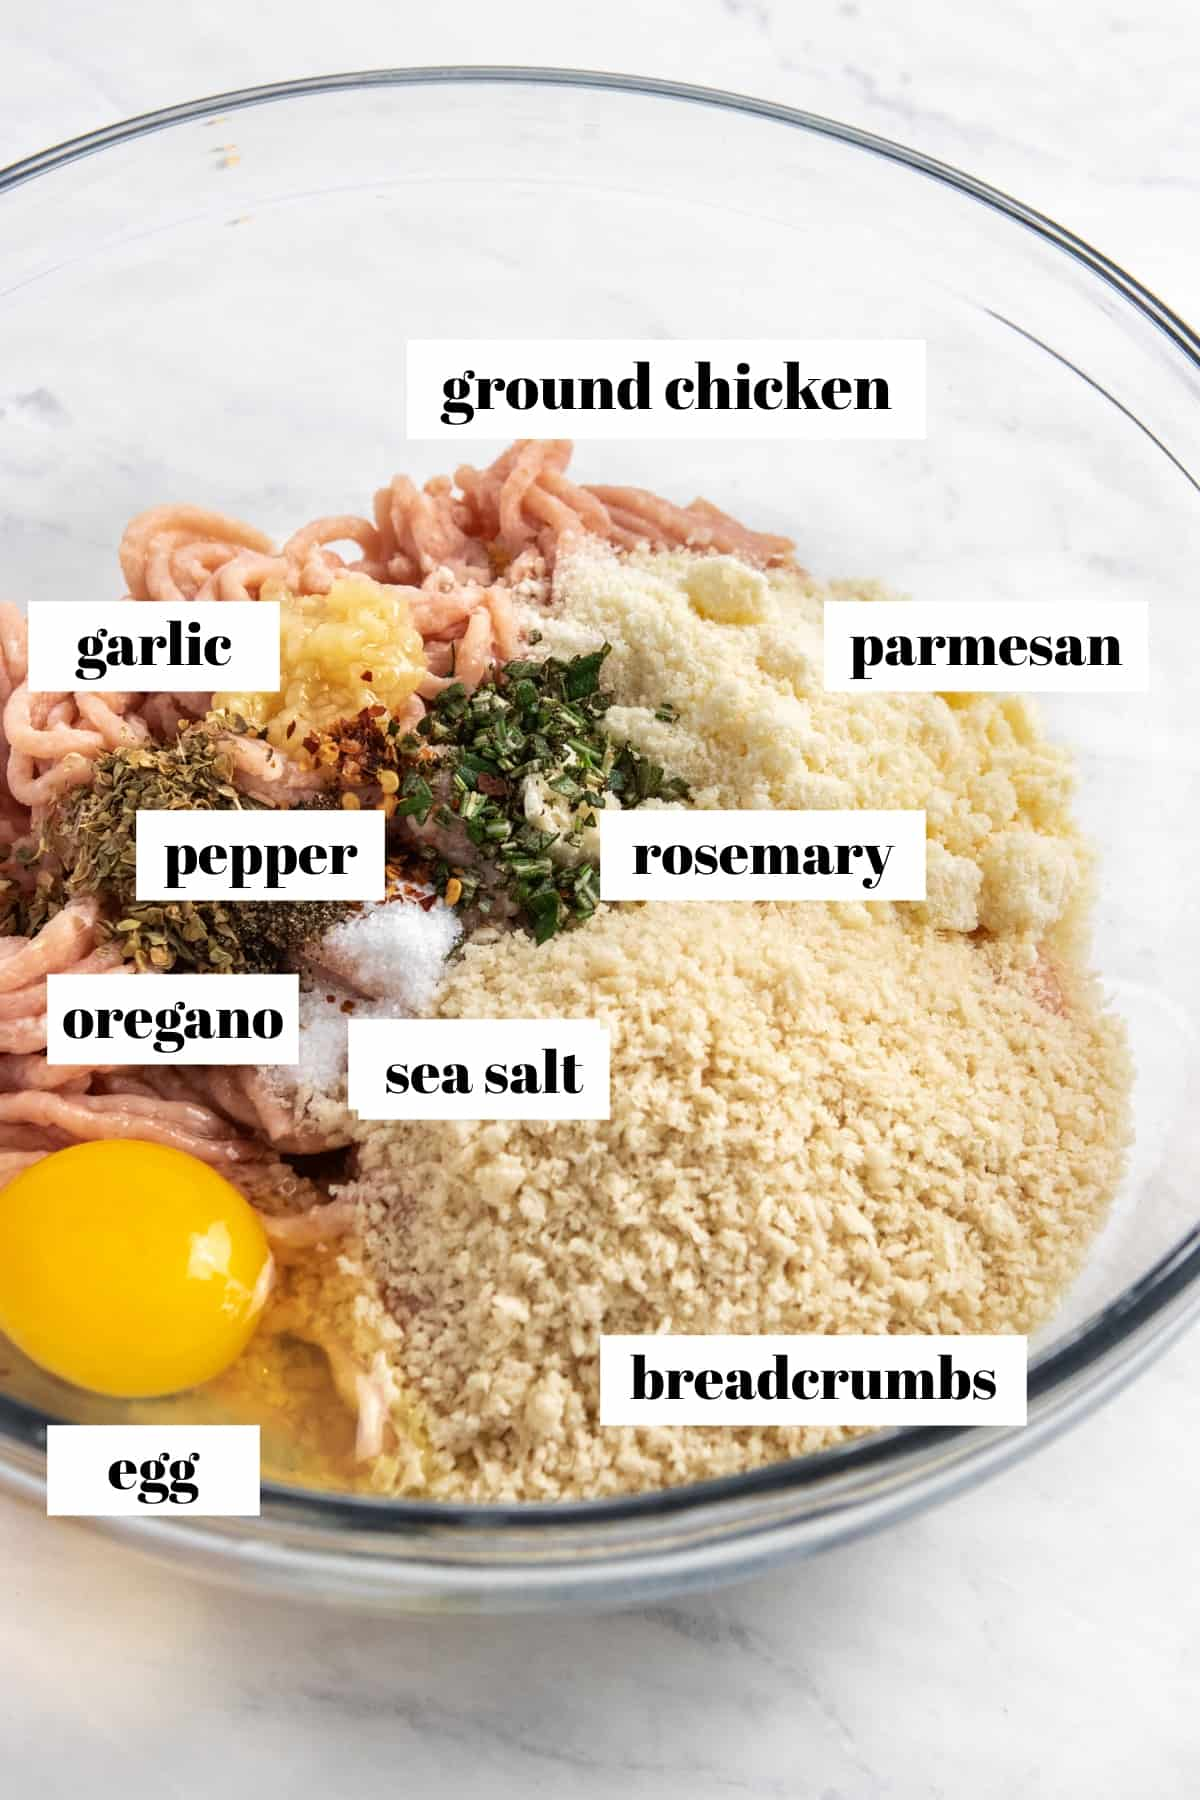 Ground chicken, egg, parmesan, bread crumbs and other ingredients labeled in mixing bowl.